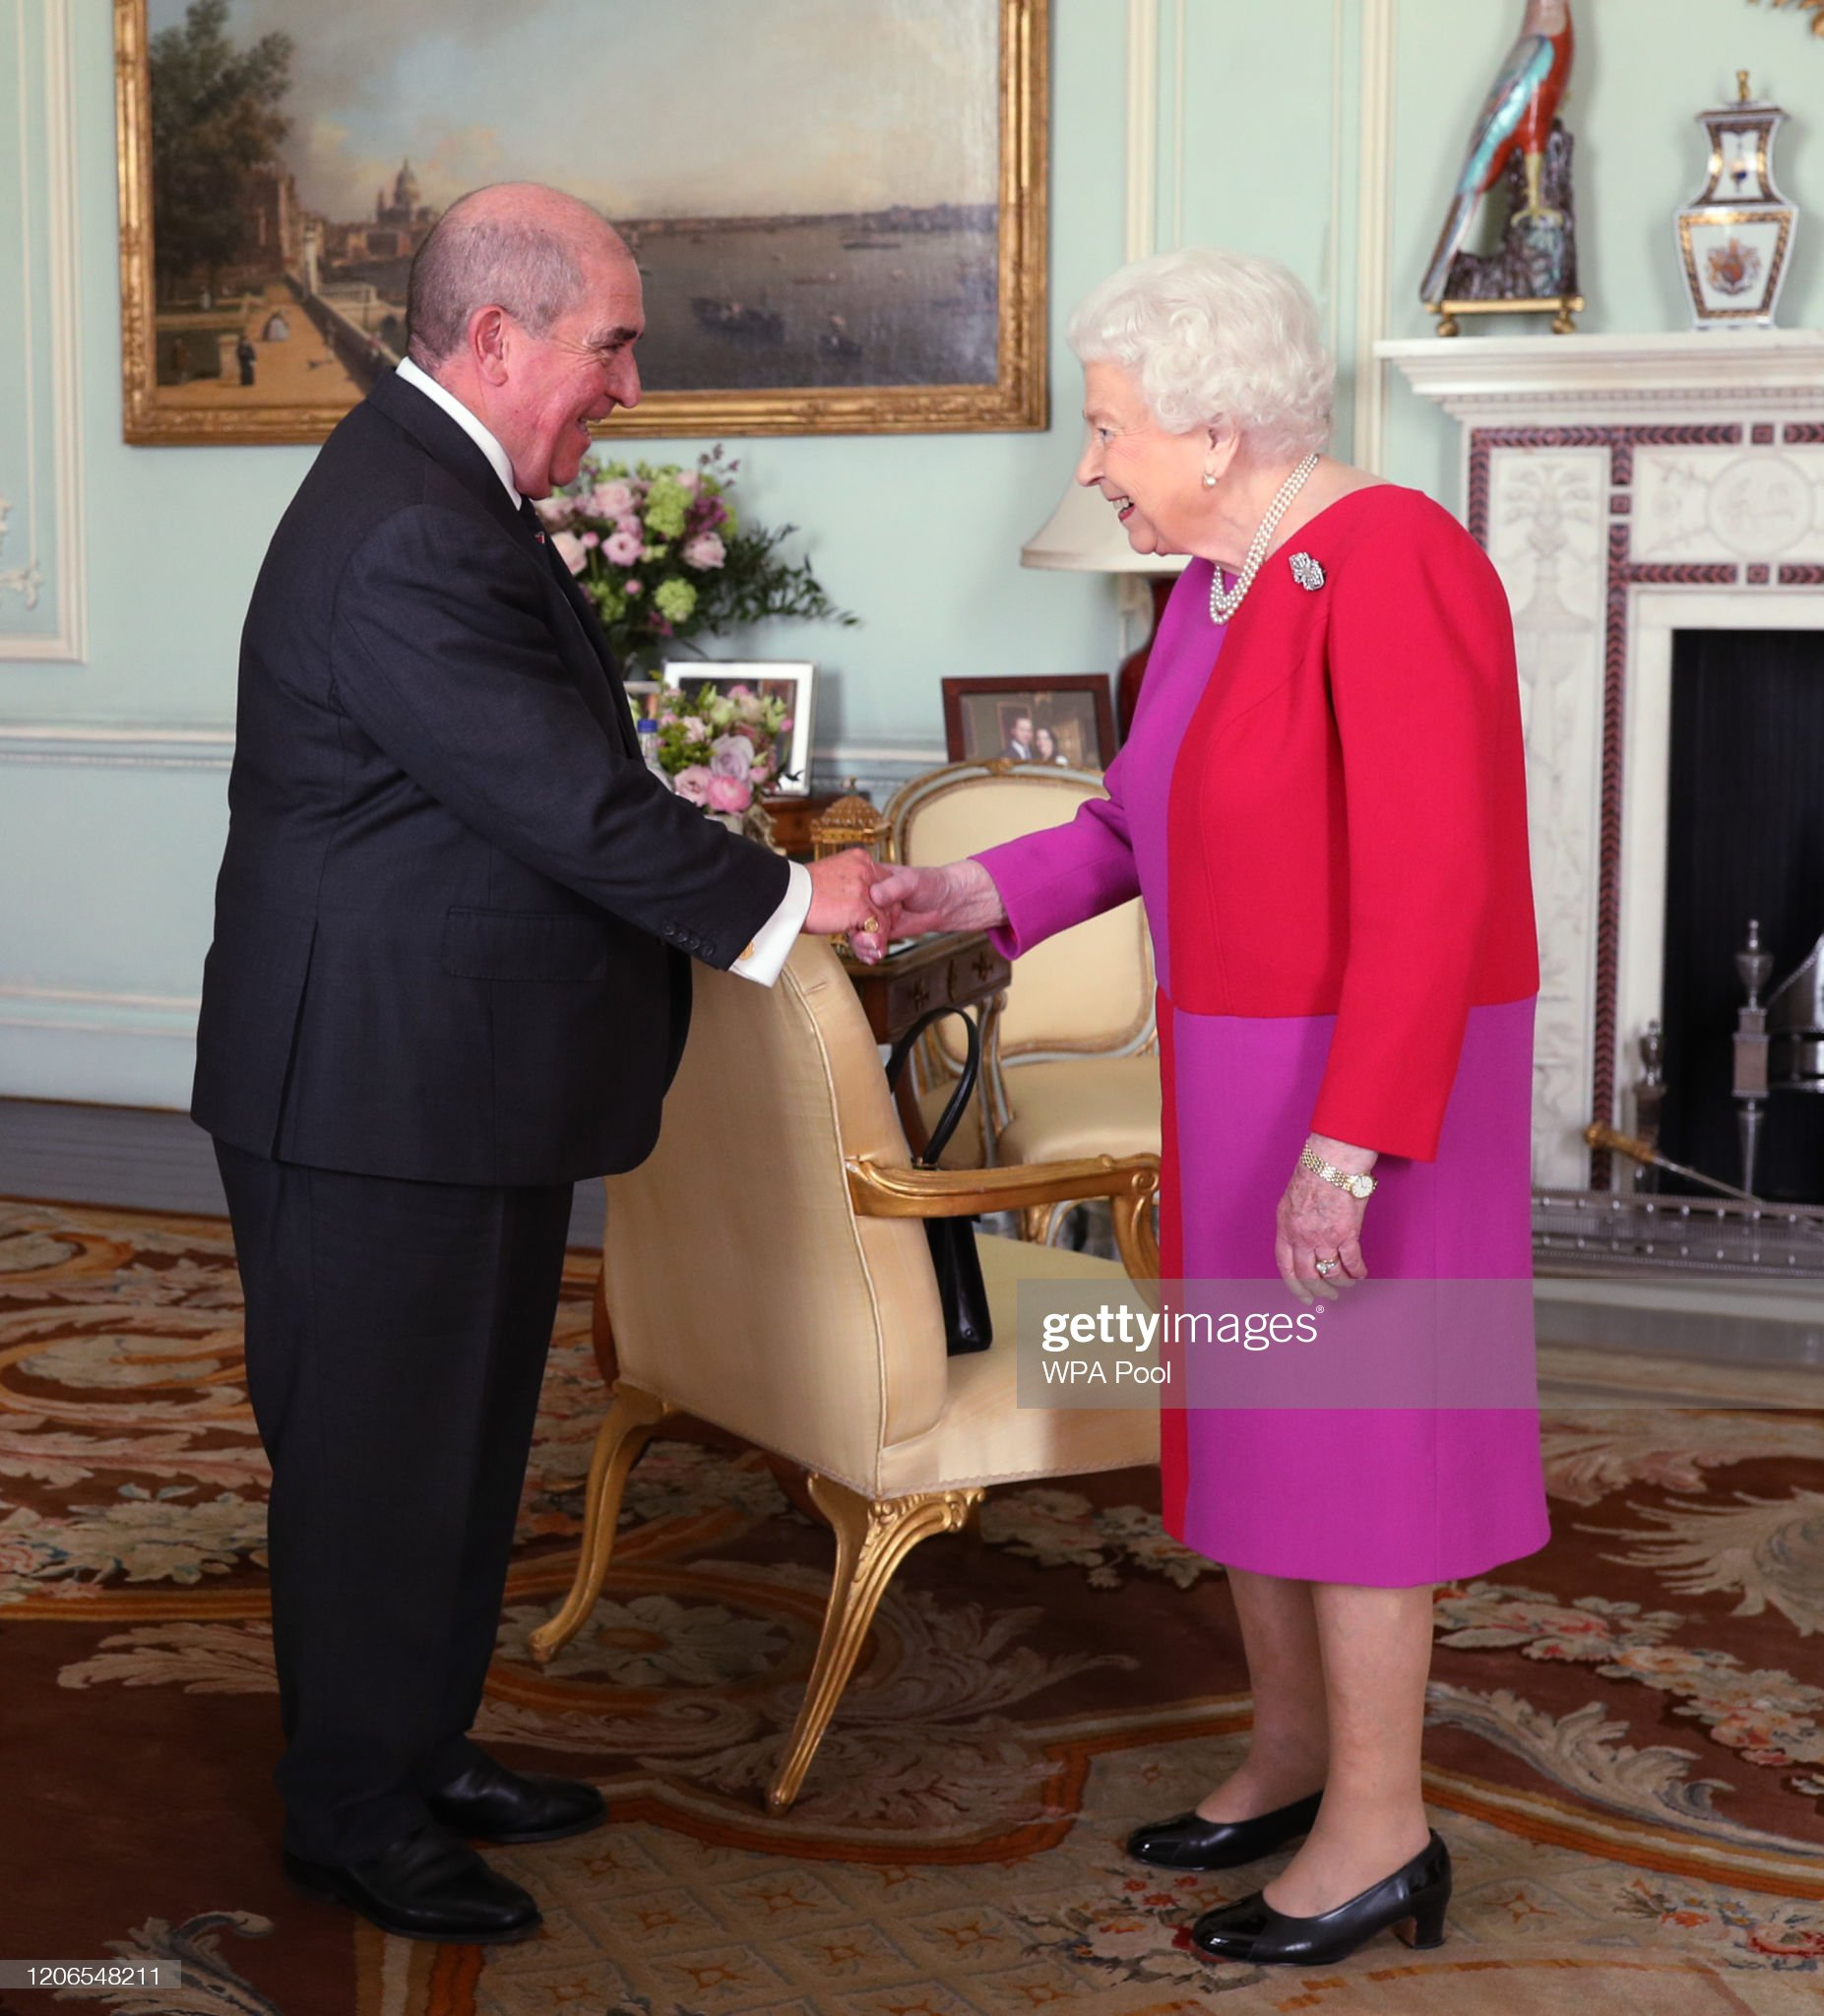 https://media.gettyimages.com/photos/queen-elizabeth-ii-receives-professor-mark-compton-lord-prior-of-the-picture-id1206548211?s=2048x2048